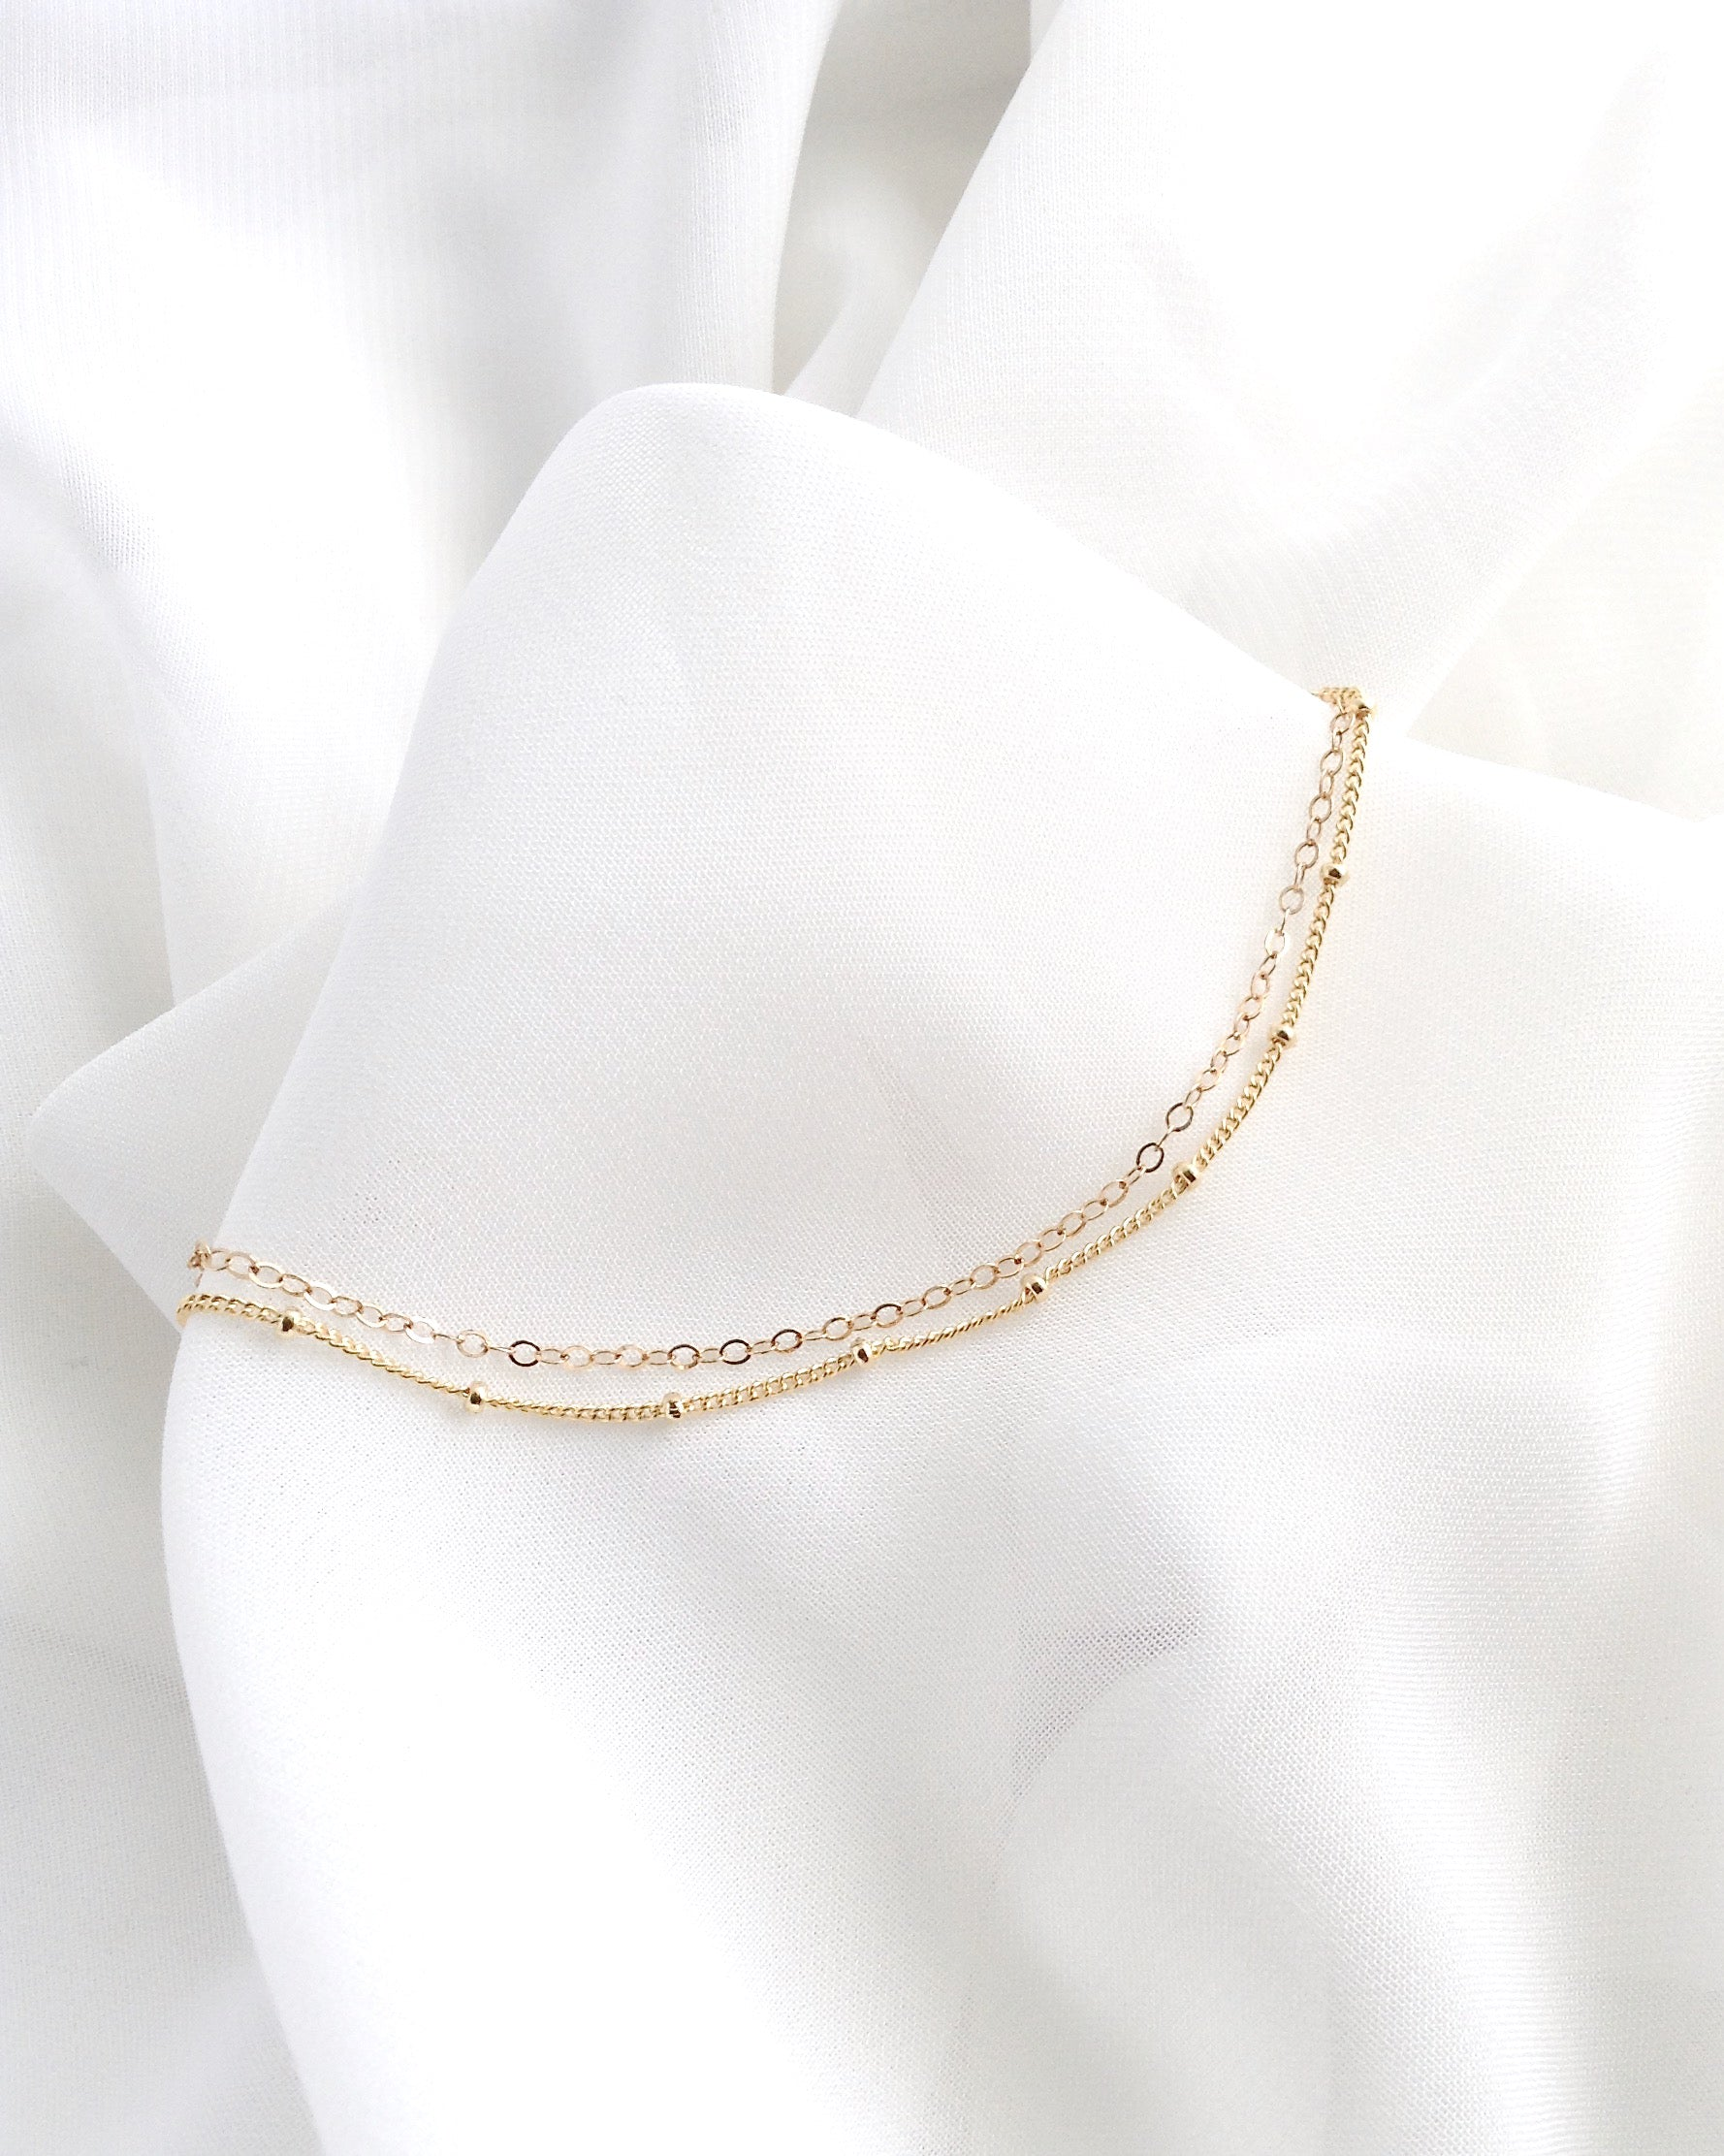 Simple Dainty Double Layer Anklet | Delicate Anklet in Gold Filled or Sterling Silver | IB Jewelry